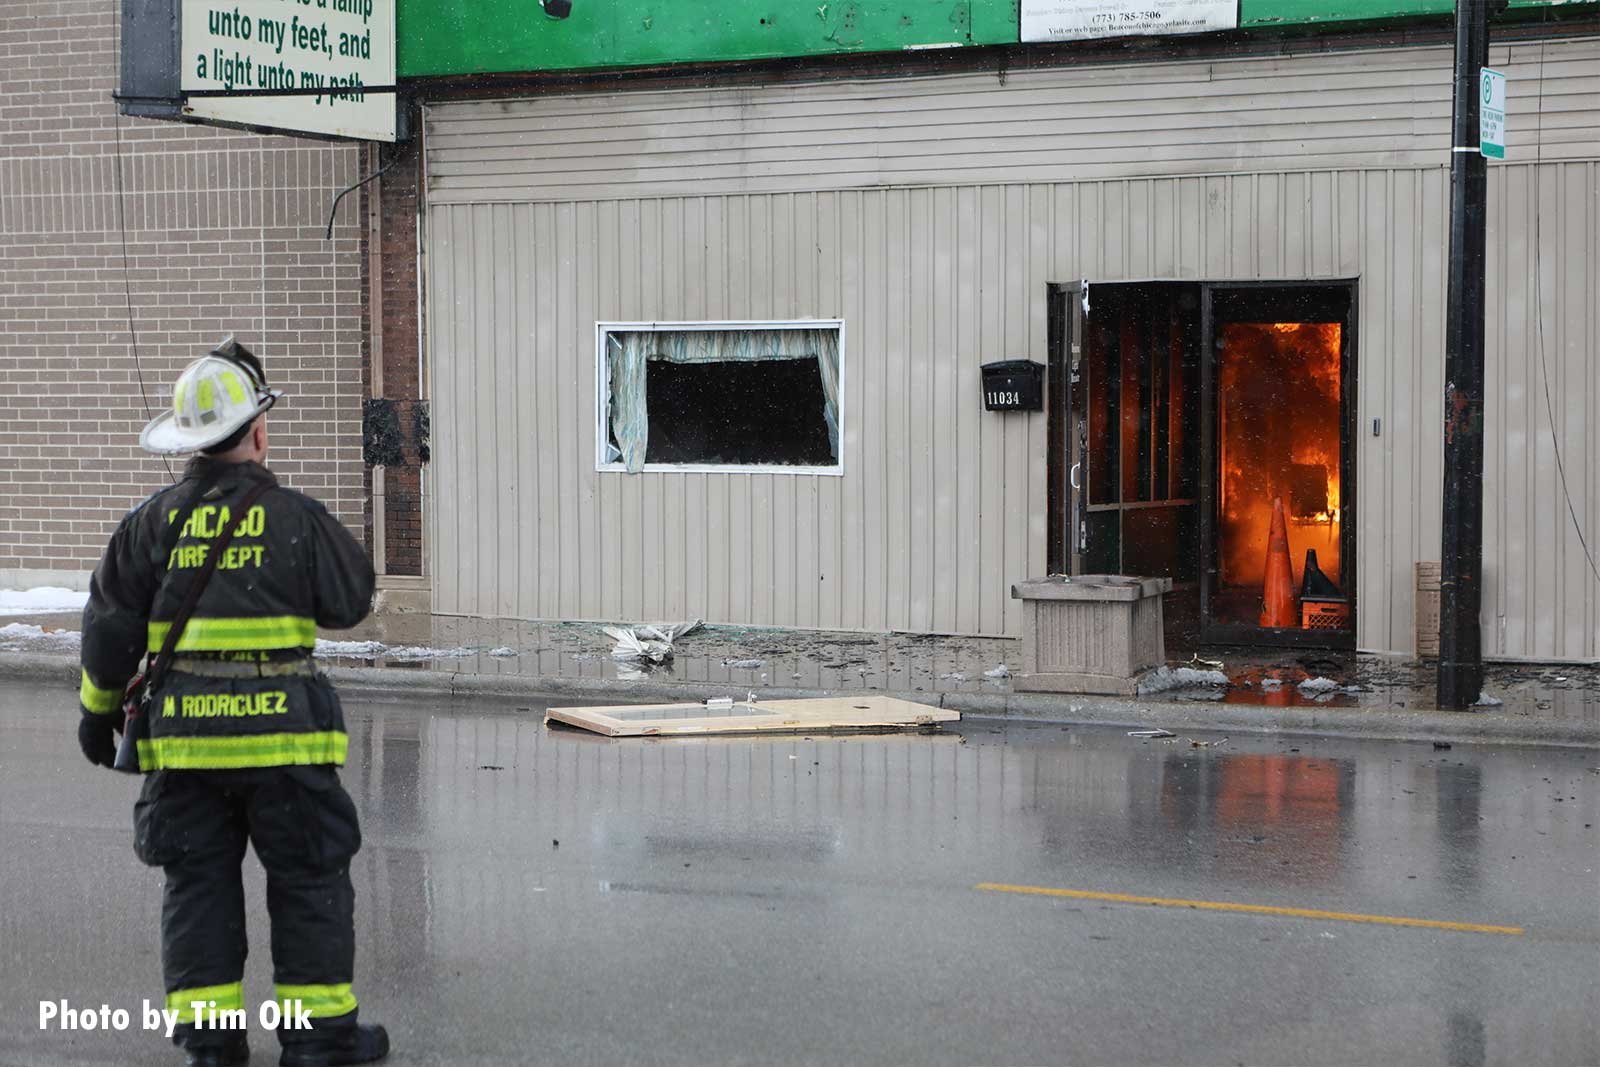 A firefighter with flames burning inside the building